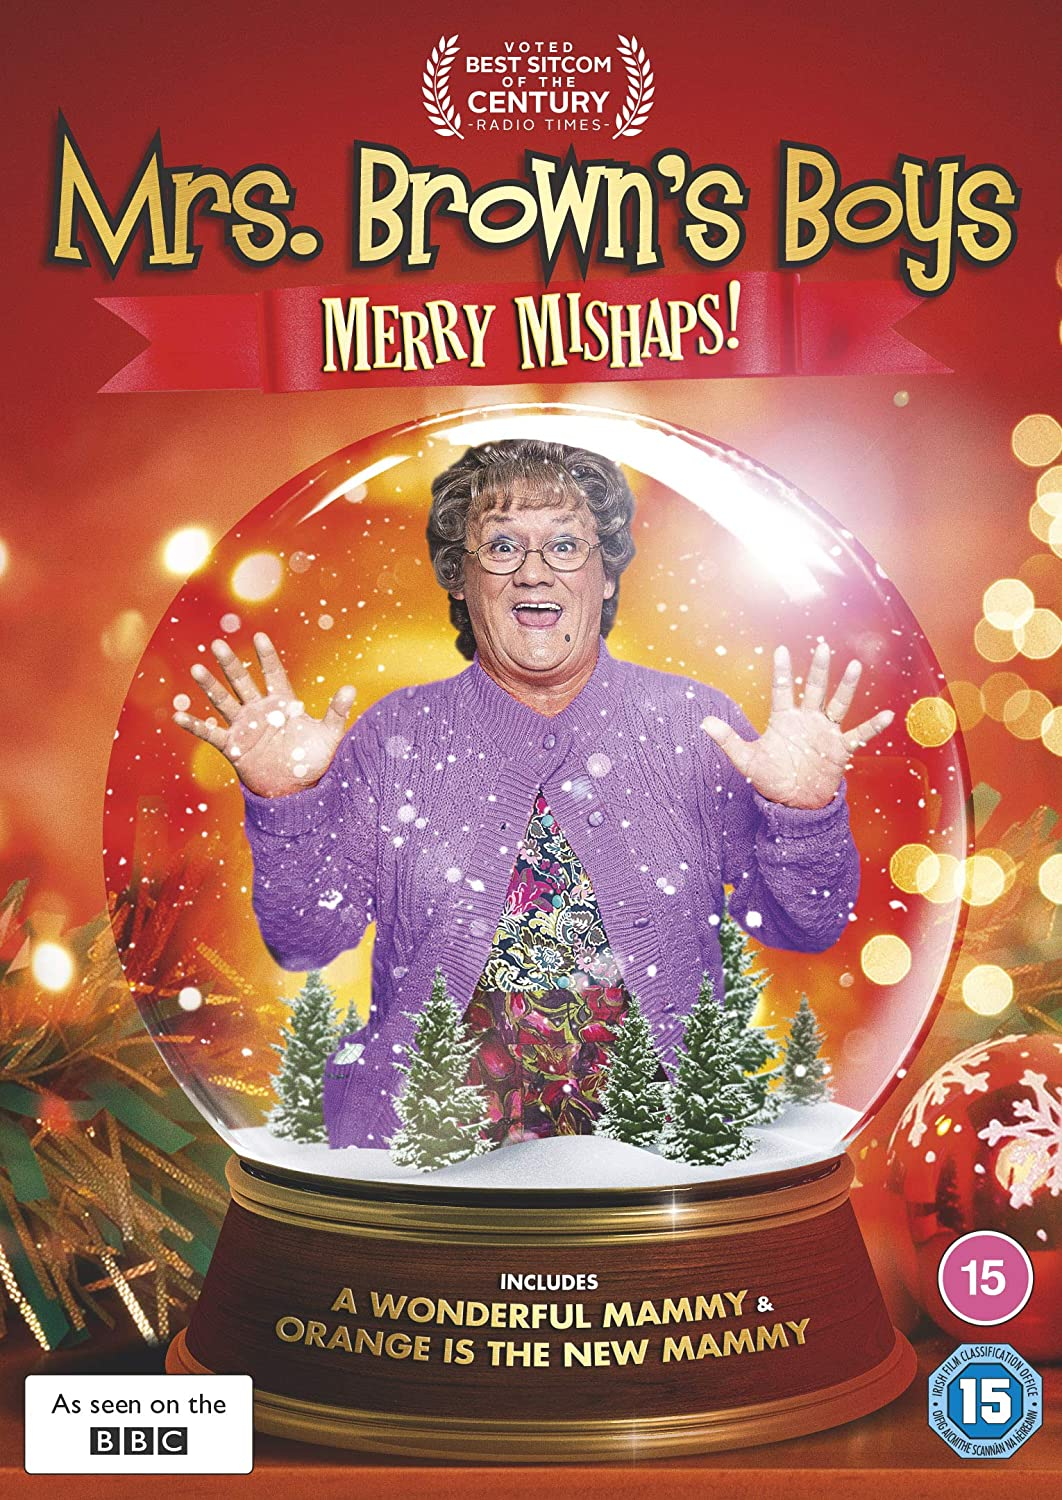 Mrs Browns Boys 2020 Christmas Special Mrs Brown's Boys: Merry Mishaps [DVD] [2020]: Amazon.co.uk: DVD